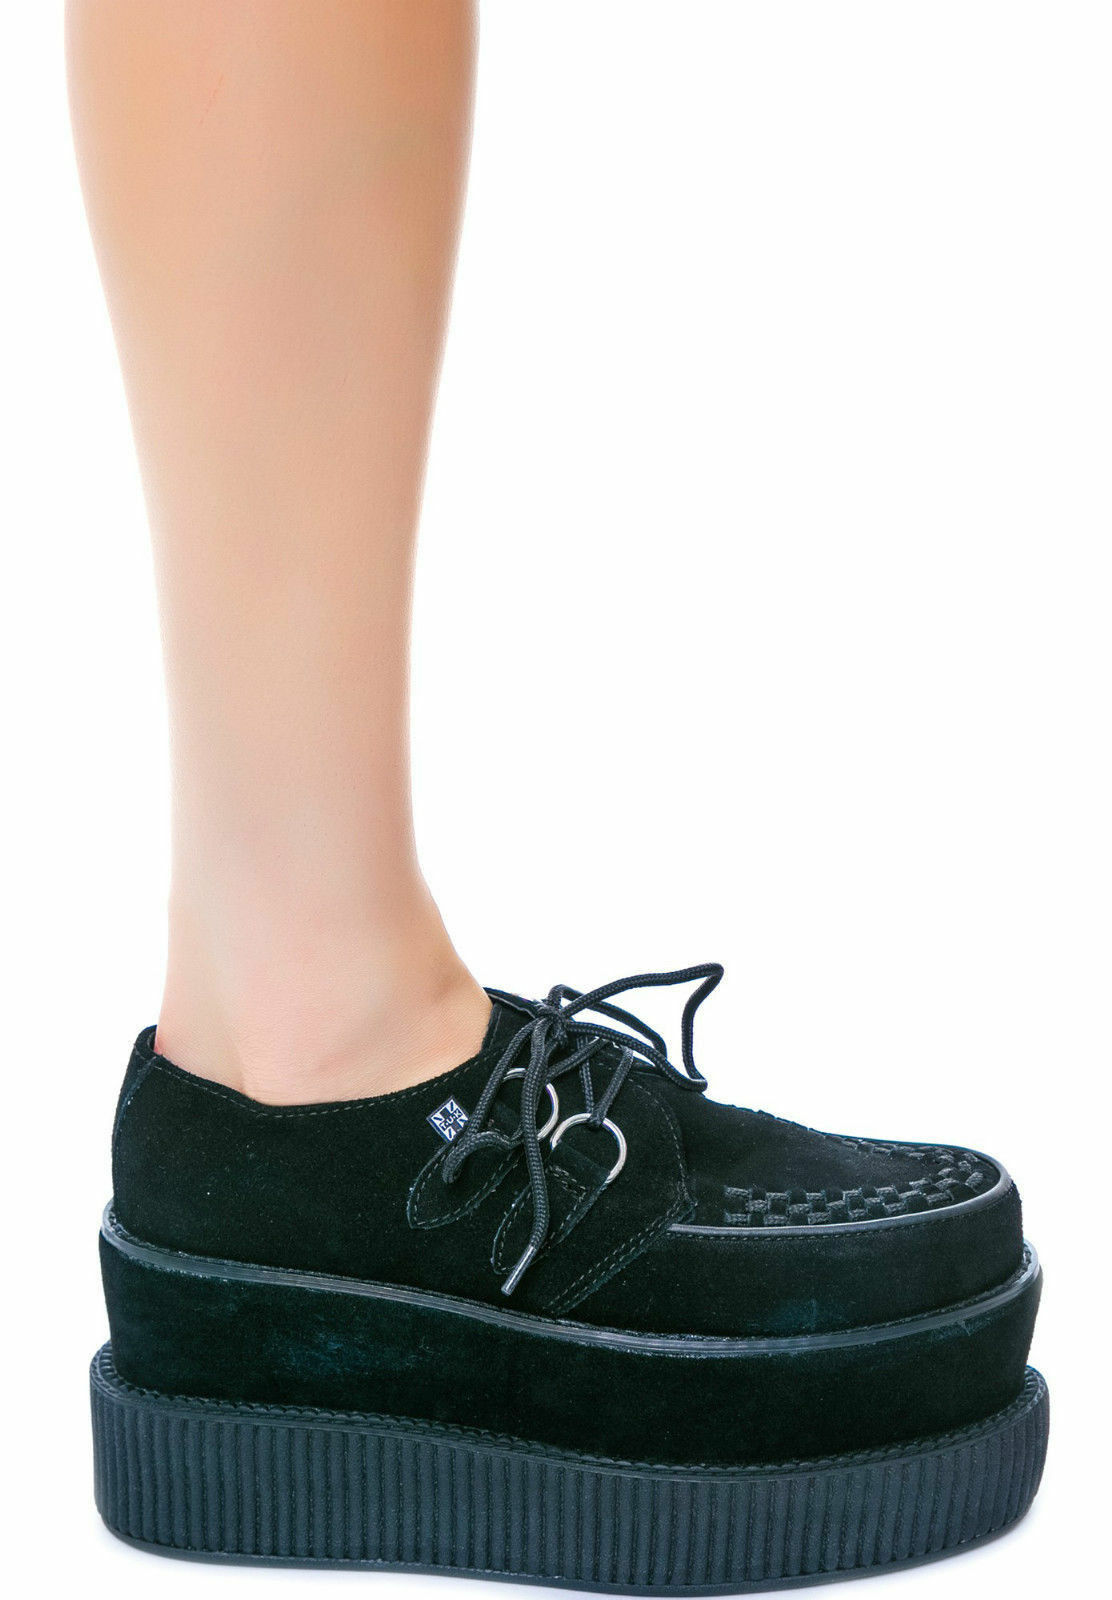 T.U.K. A8633 Tuk Punk shoes Black Suede Double Double Viva Mondo Creepers